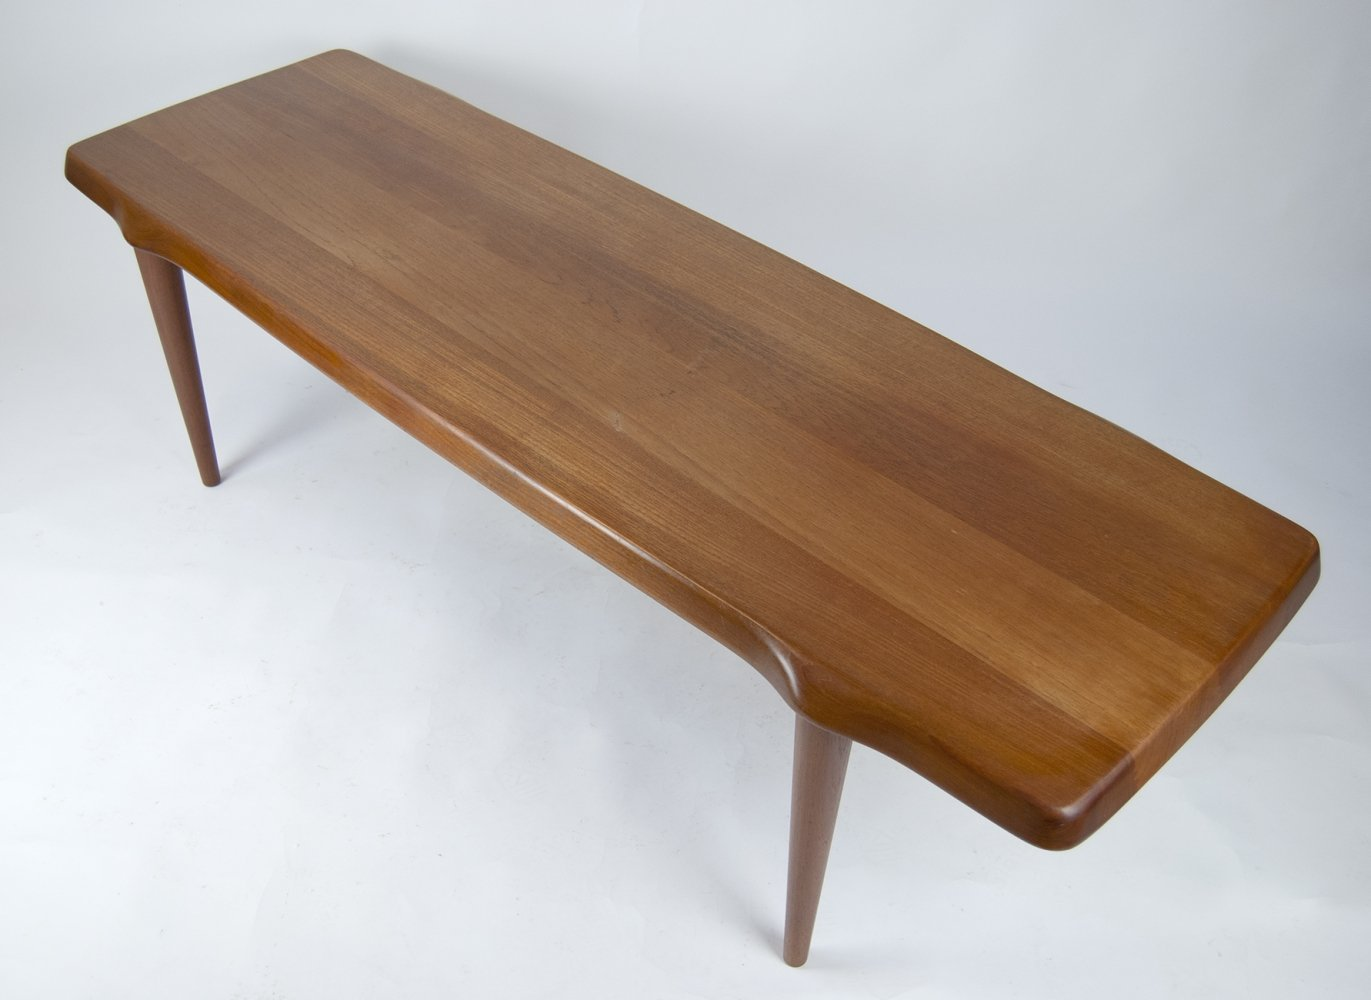 Solid Teak Coffee Table by John Bonè for Mikael Laursen, 1960s